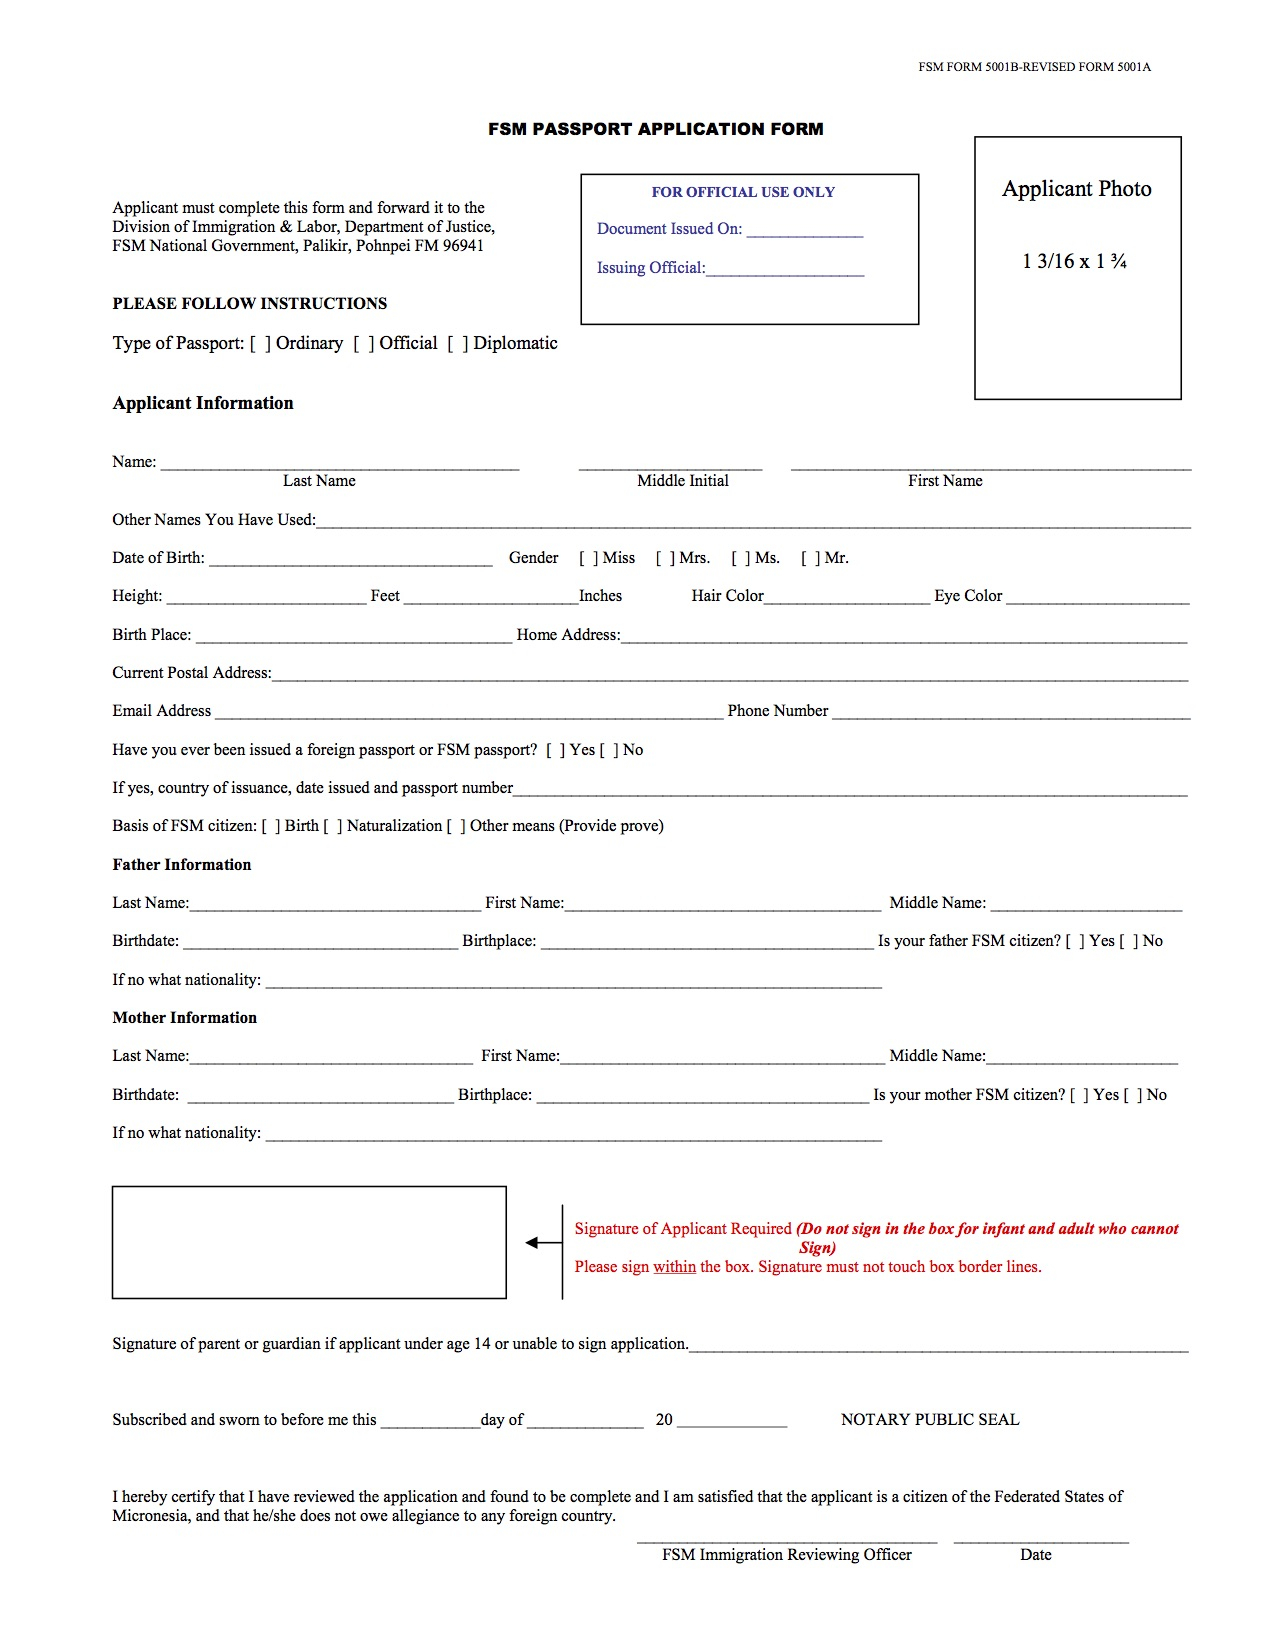 FSM Passport Application Form Embassy Of The Federated